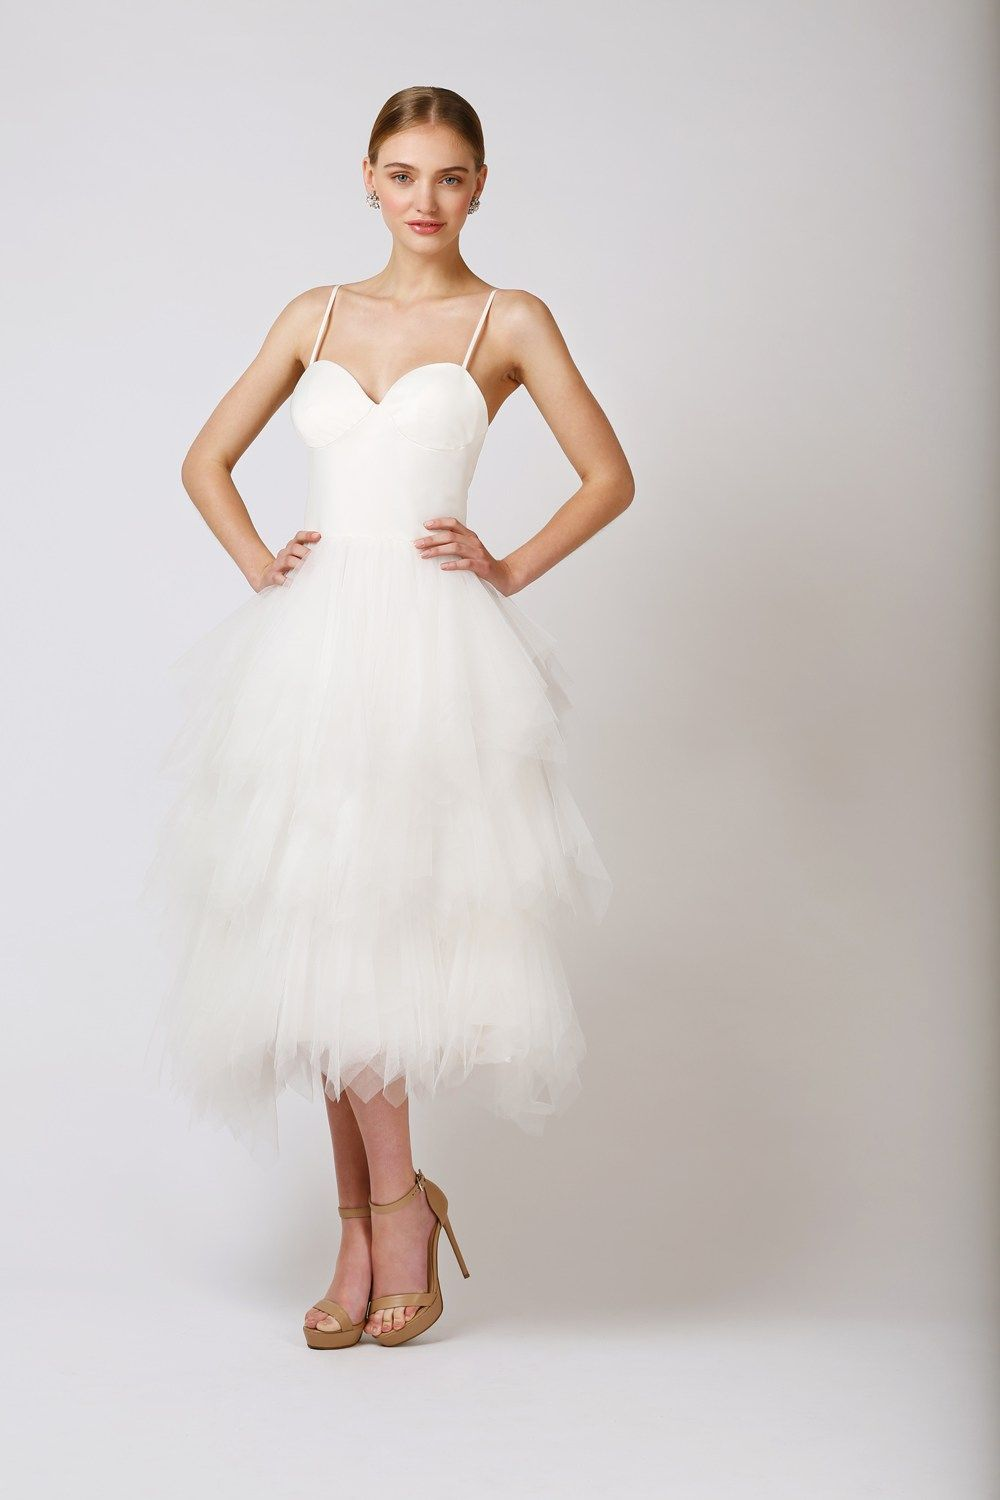 Ruffle dress wedding  Inspired by the classic tutu the Love Found True Lilly Ruffle Dress